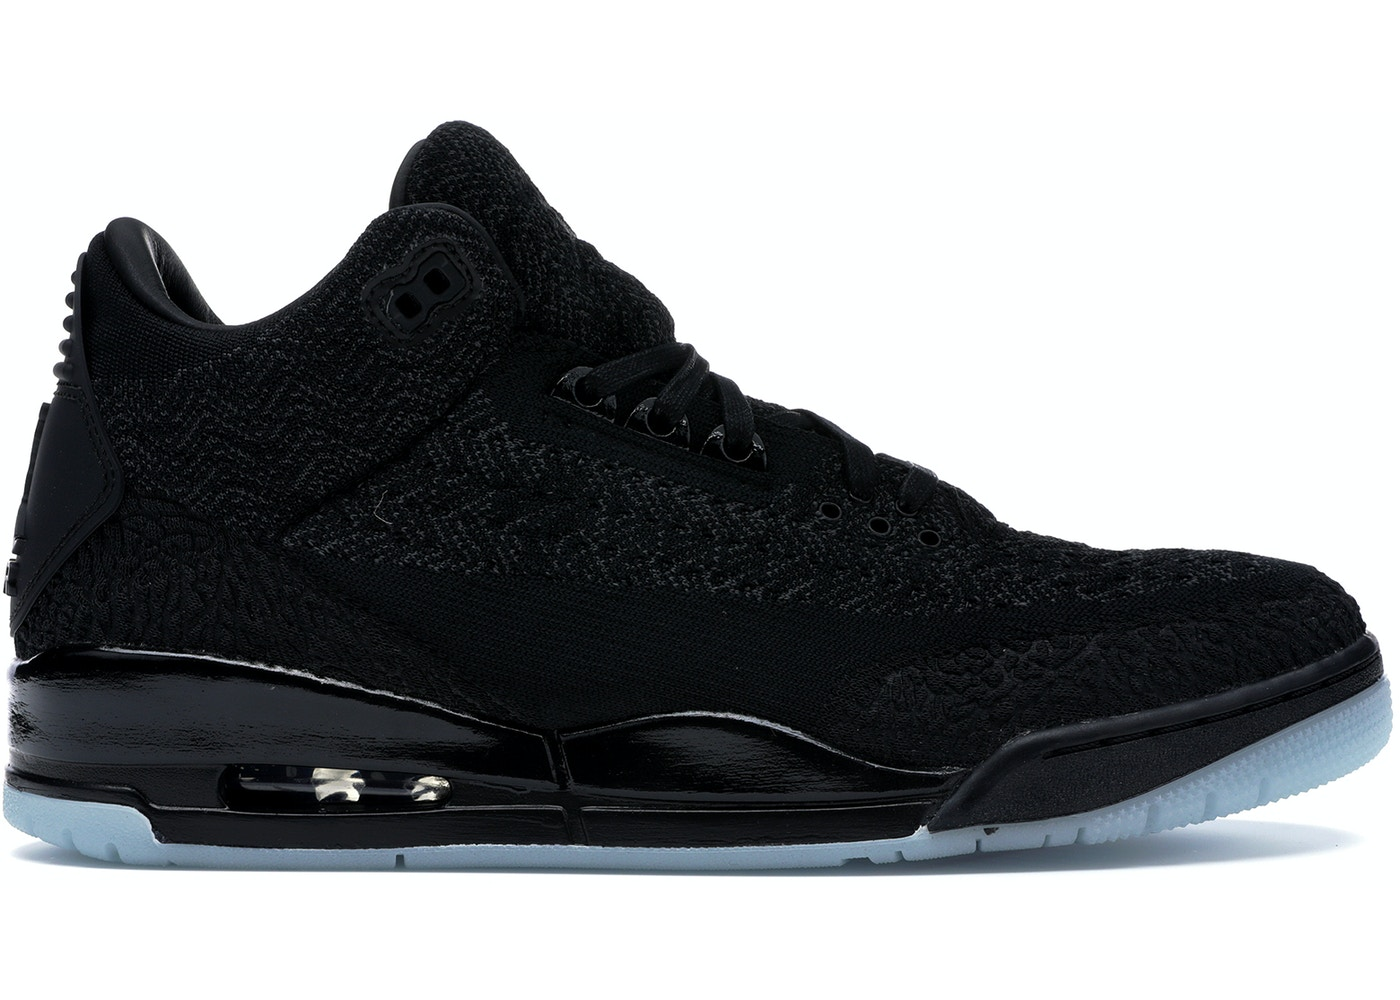 competitive price e0432 c1cff Jordan 3 Retro Flyknit Black